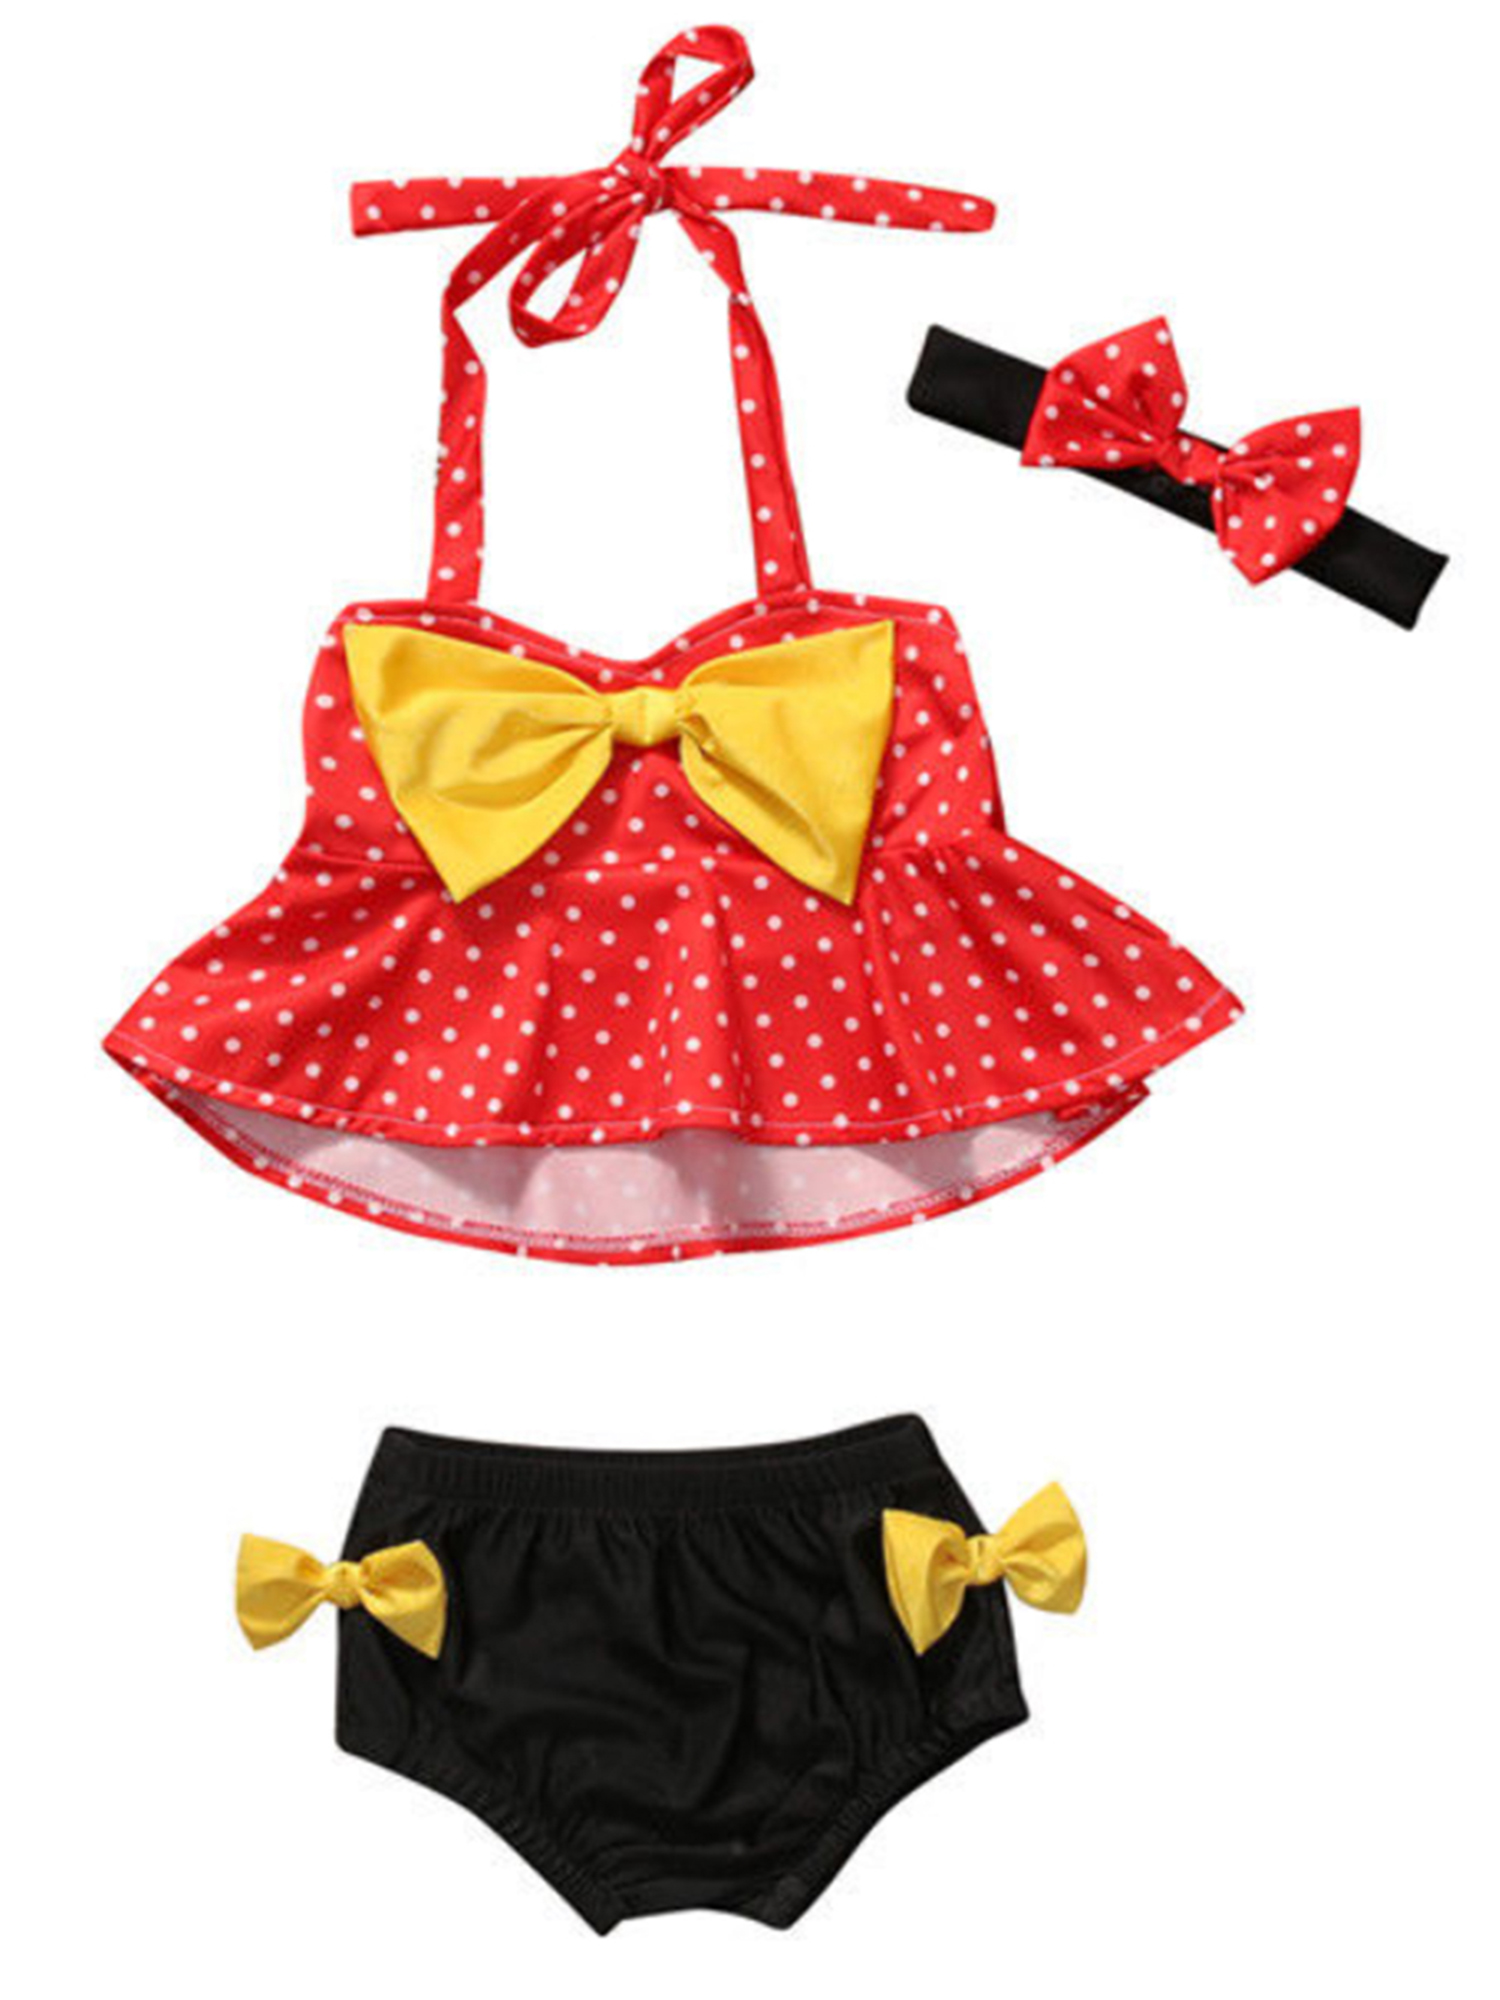 StylesILove Cute Baby Girl Polka Dot Yellow Bowknot Bikini with Headband 3 pcs Set Swimwear Bathing Beach Suit (100/18-24 Months)